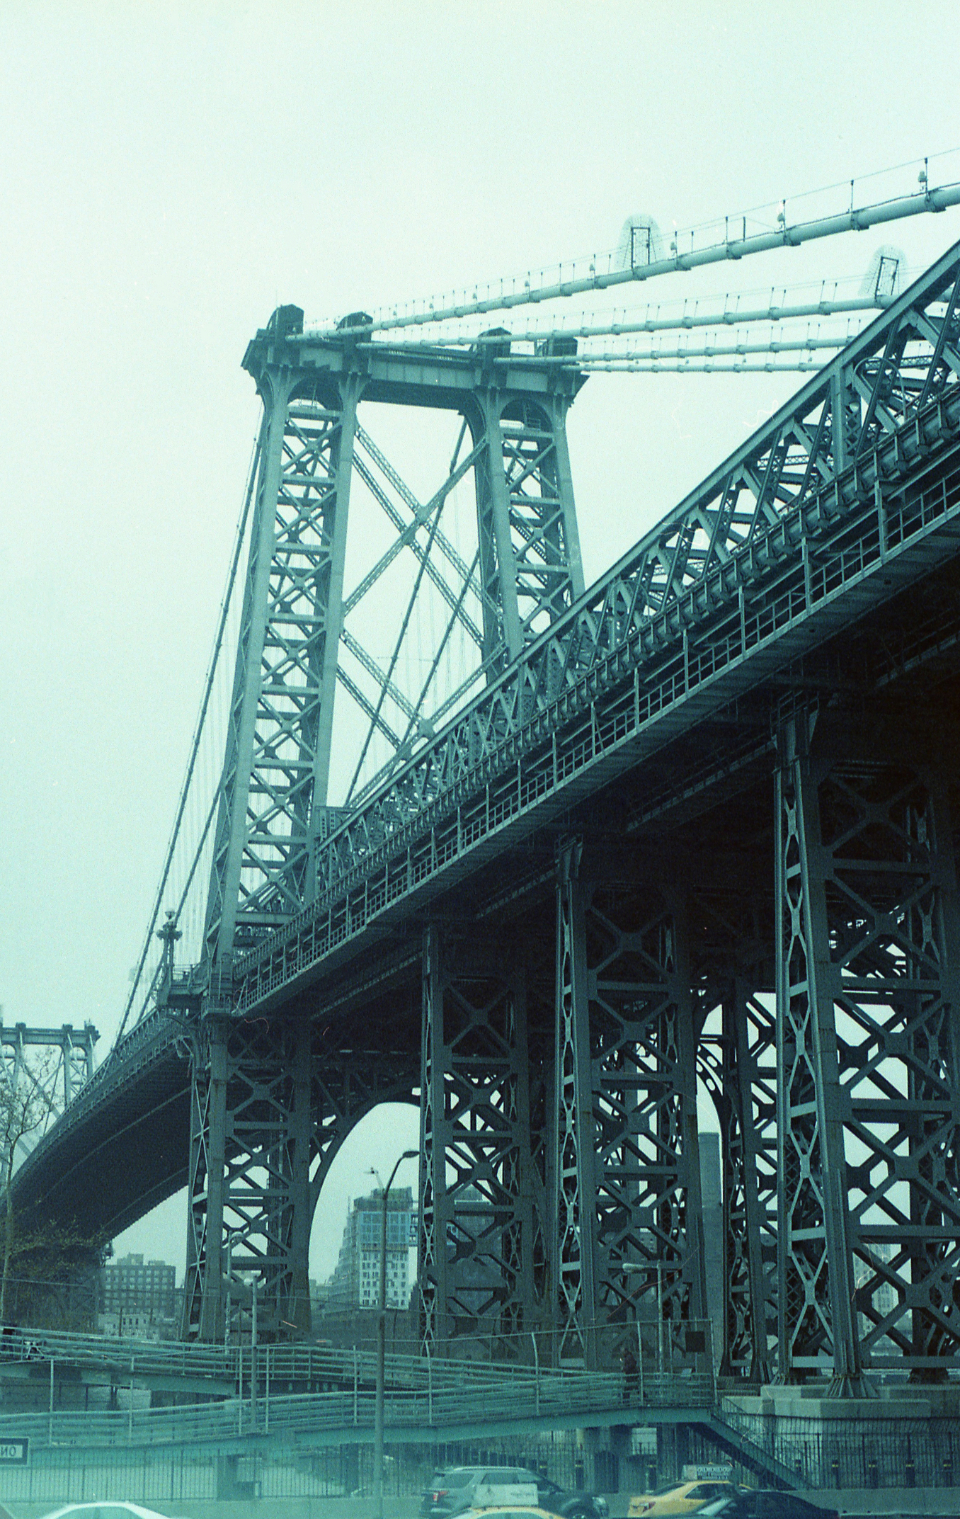 bridge sky suspension travel new york city overcast cloudy buildings tall view urban road city architecture vintage grainy